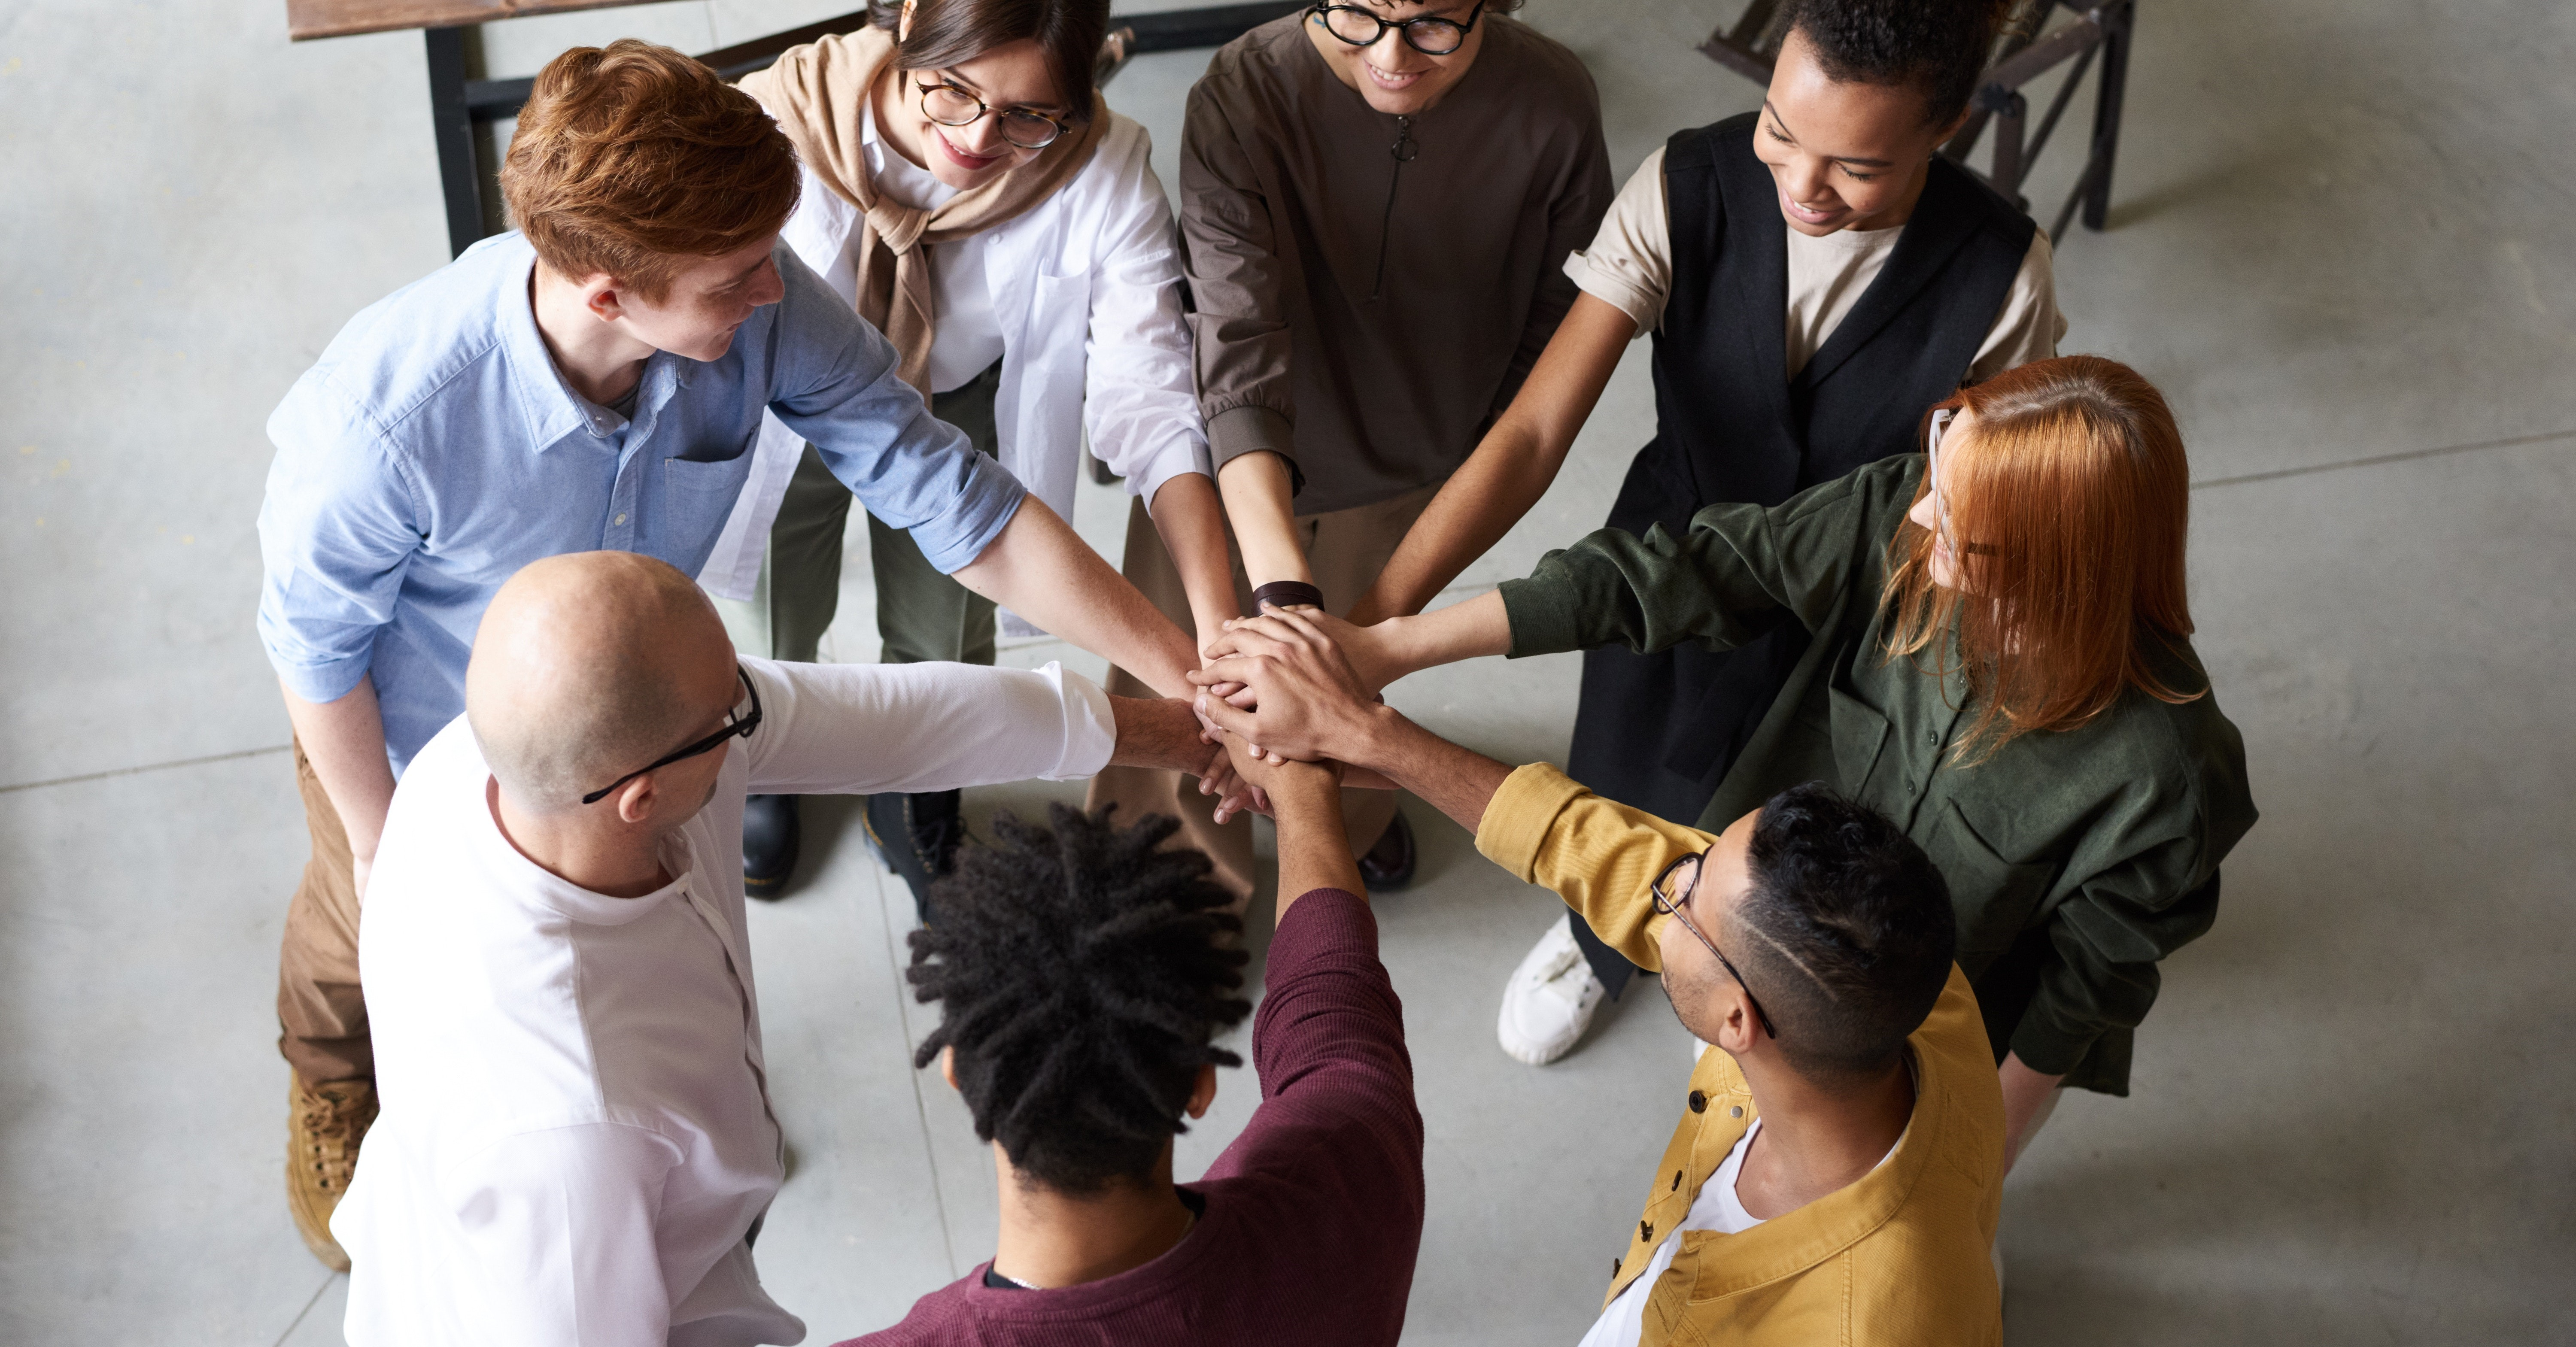 Leading by example: Educators and employers prove engagement works